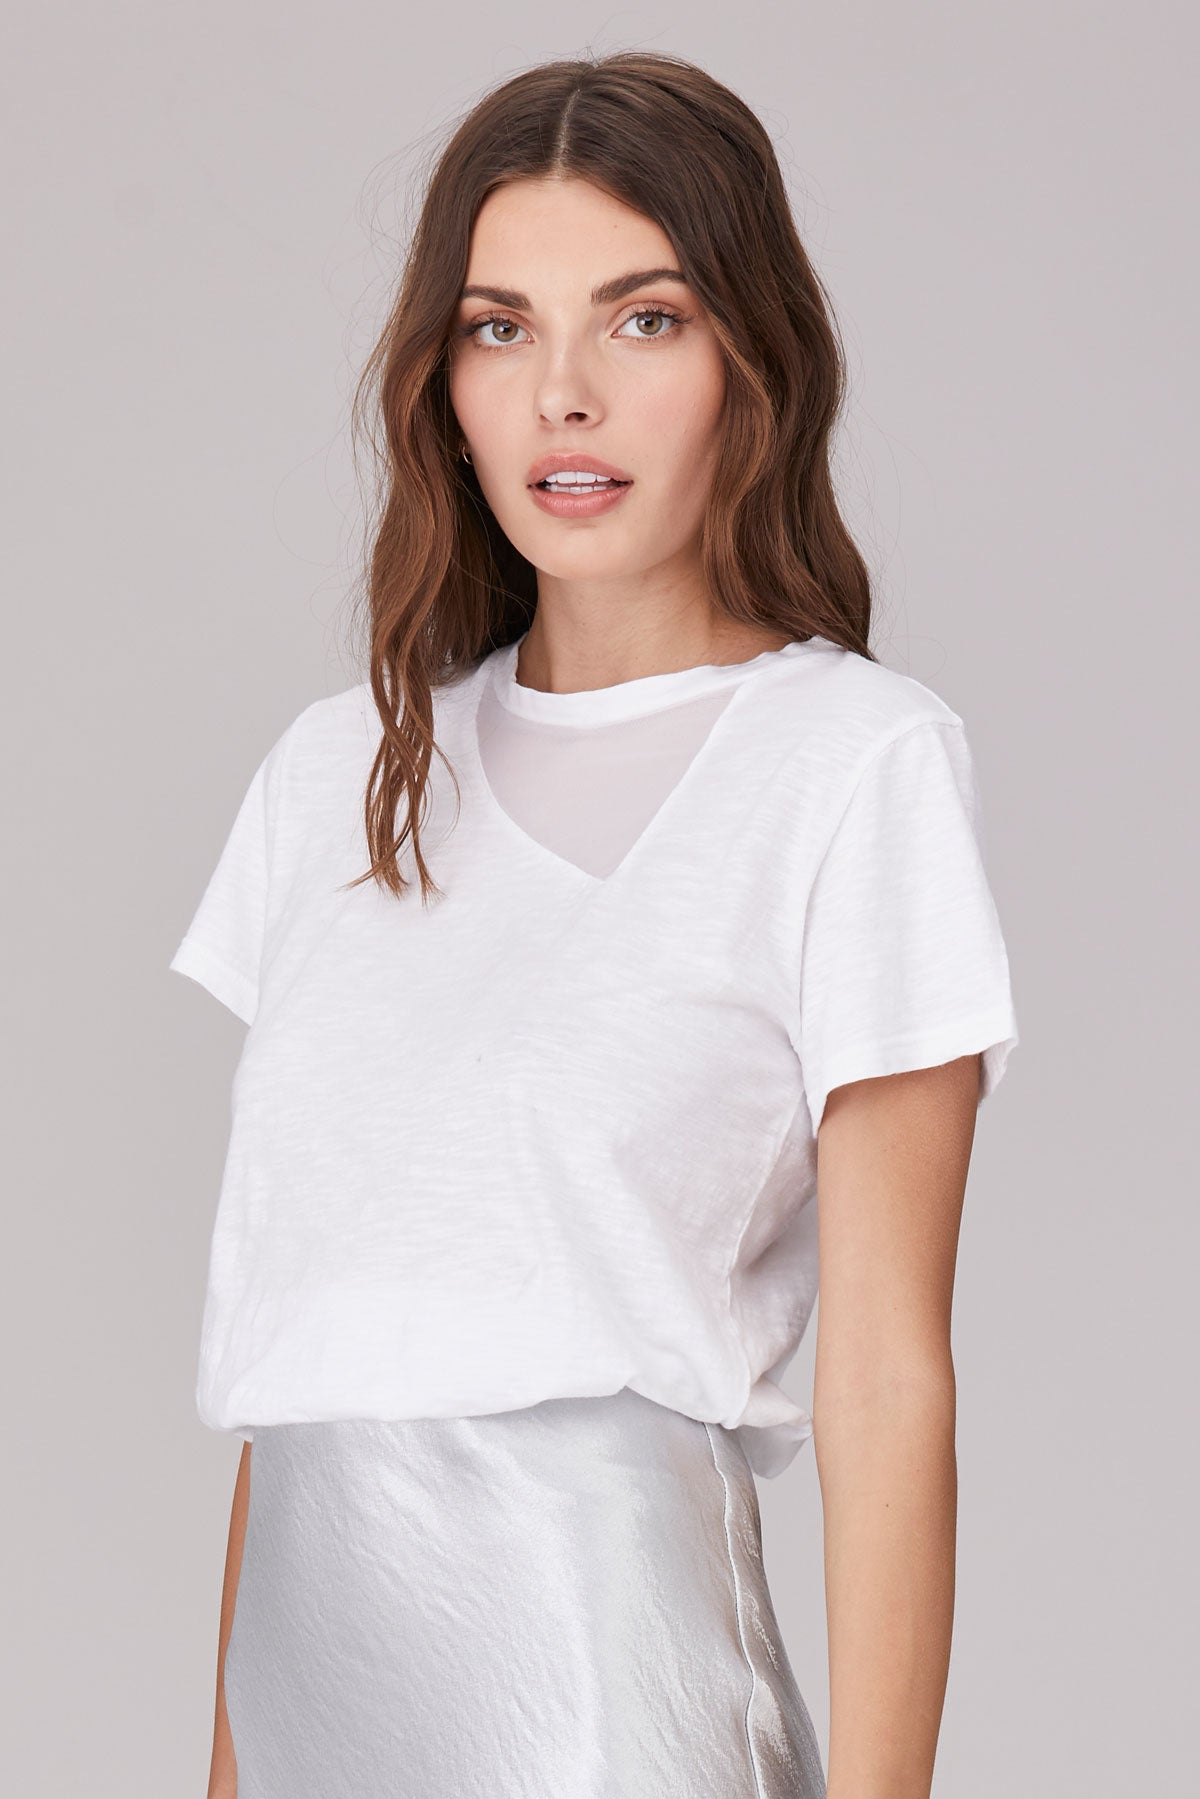 LNA Surreal Tee with Mesh Detail in White